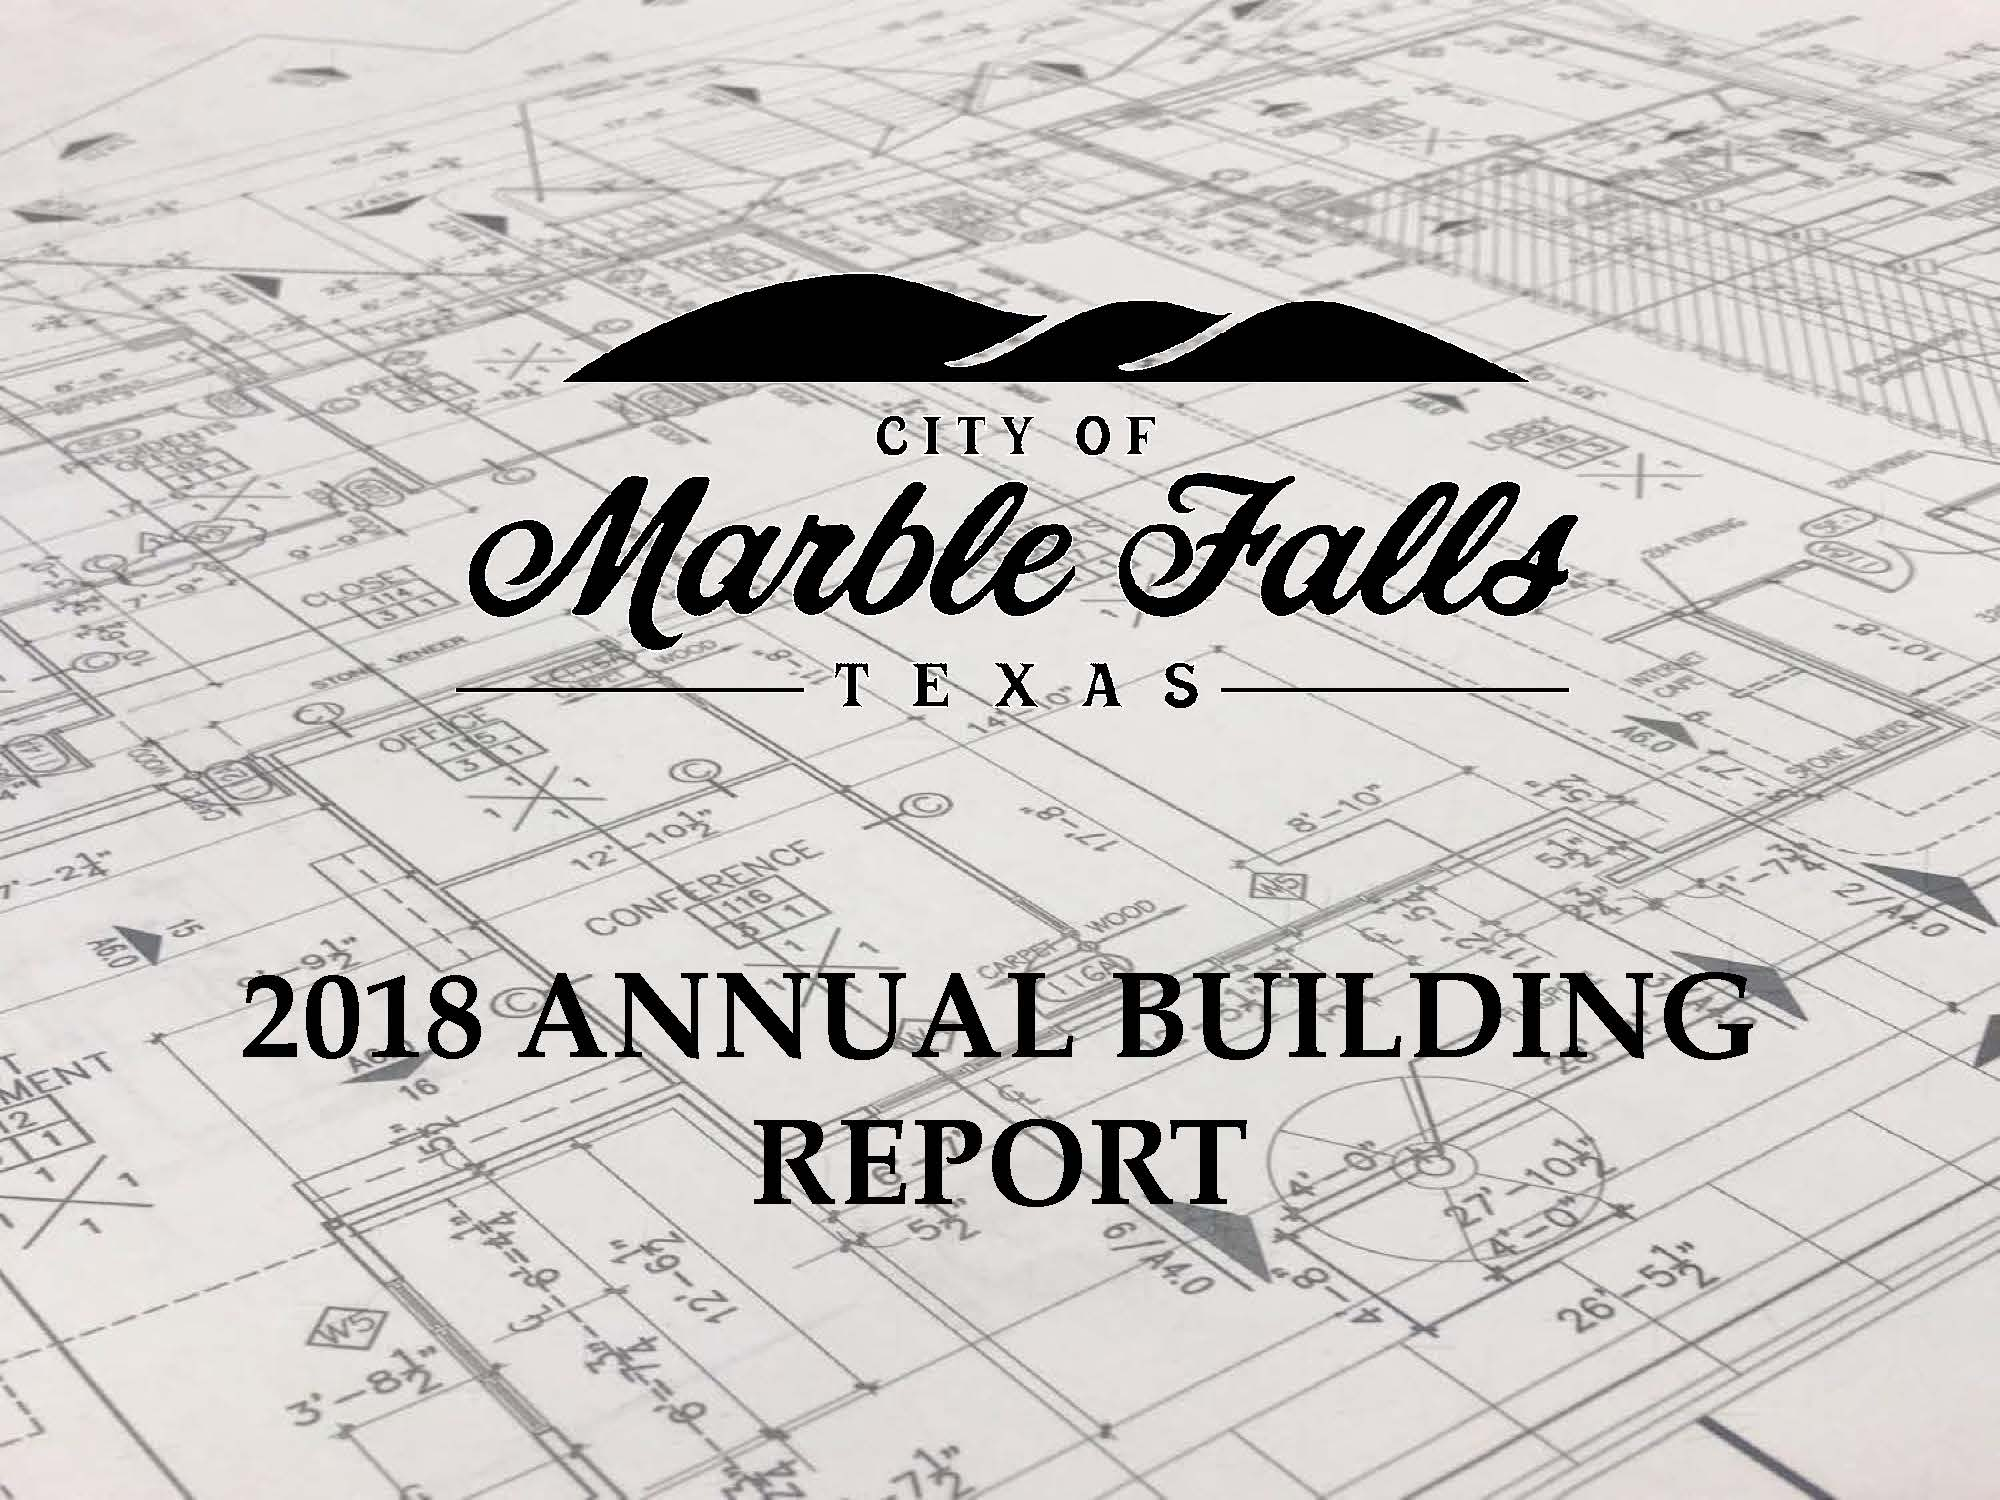 2018 Annual Building Report